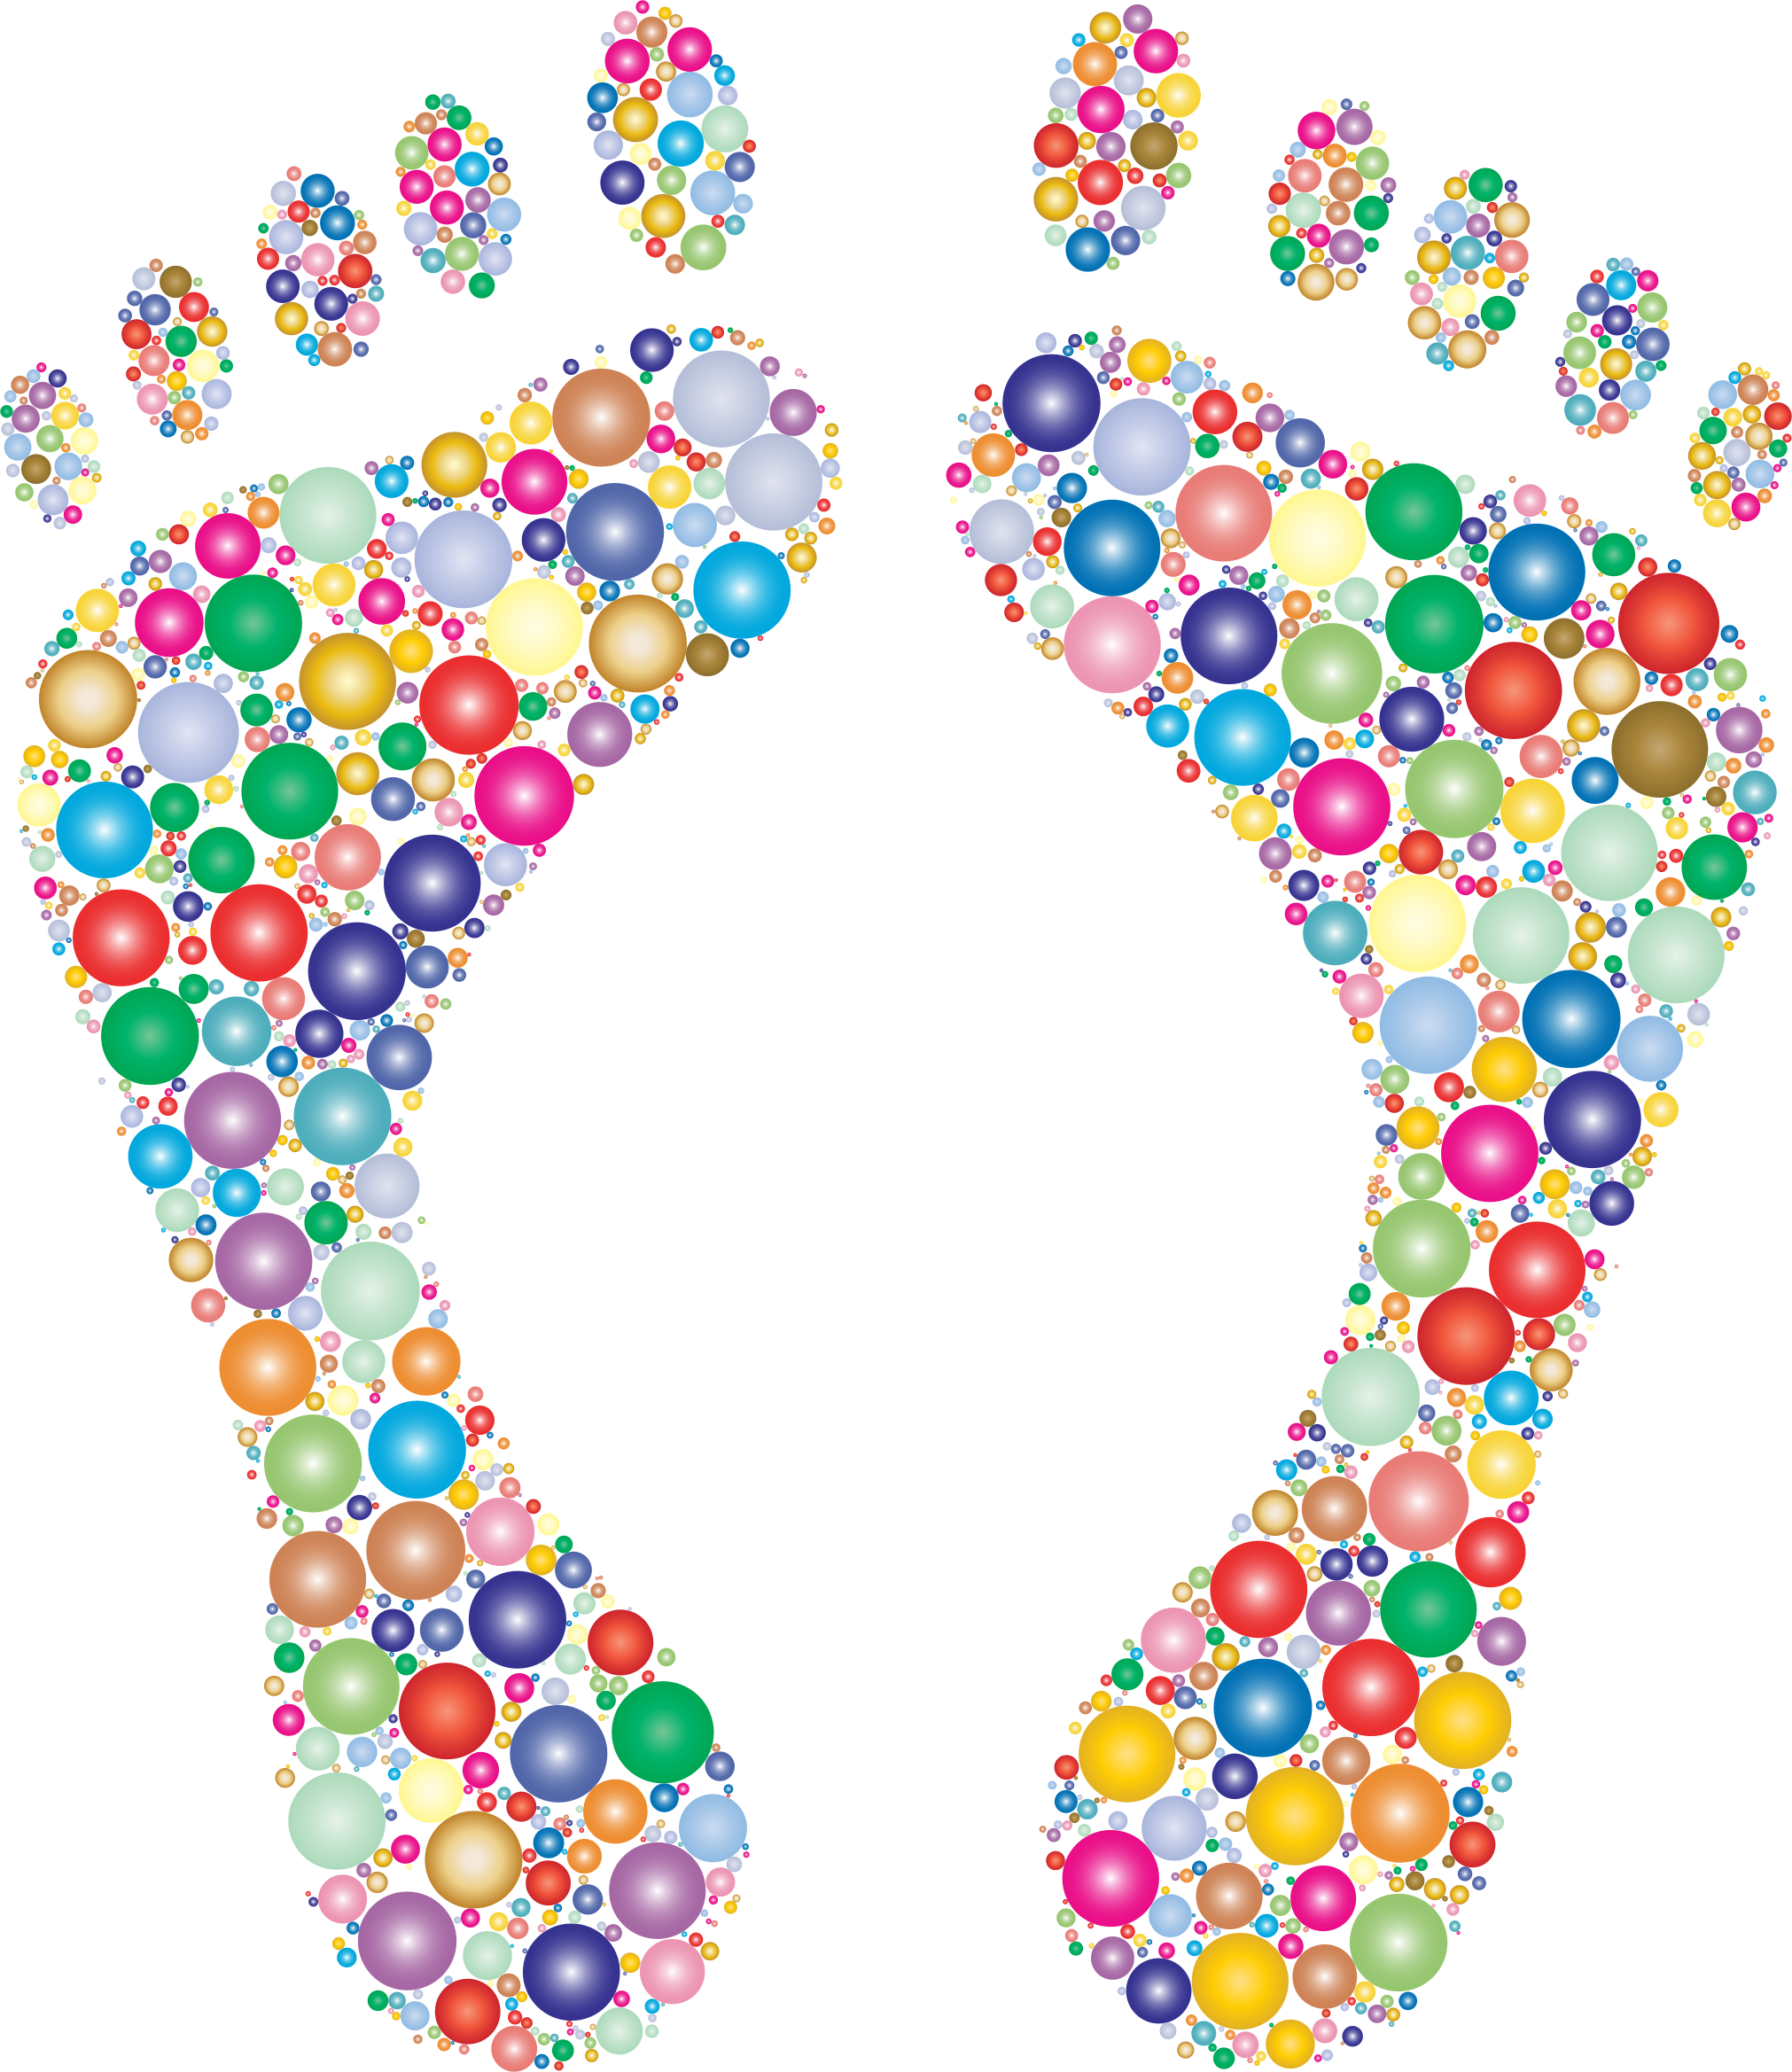 Footprint heart clipart picture freeuse download Clipart - Footprints Silhouette Circles Prismatic 2 picture freeuse download